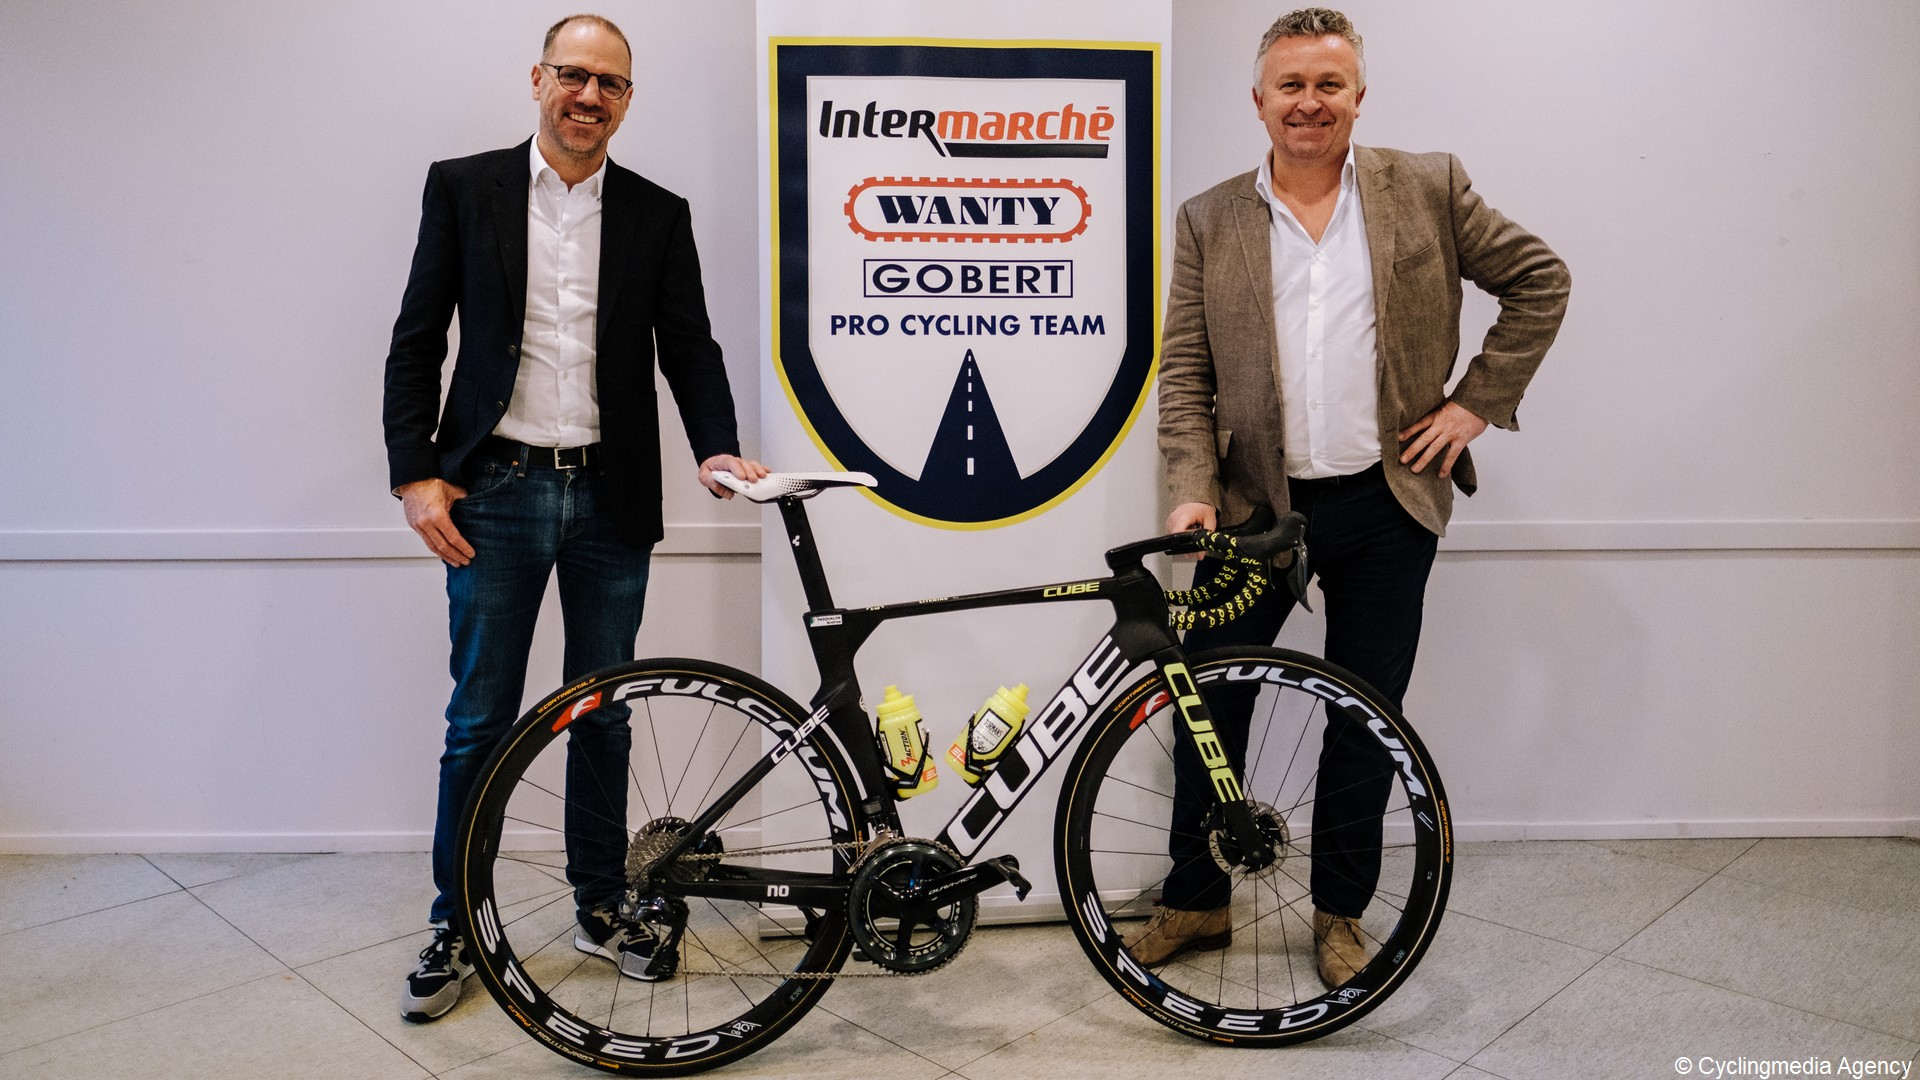 Intermarché x Wanty Gobert (cyclisme) 2020